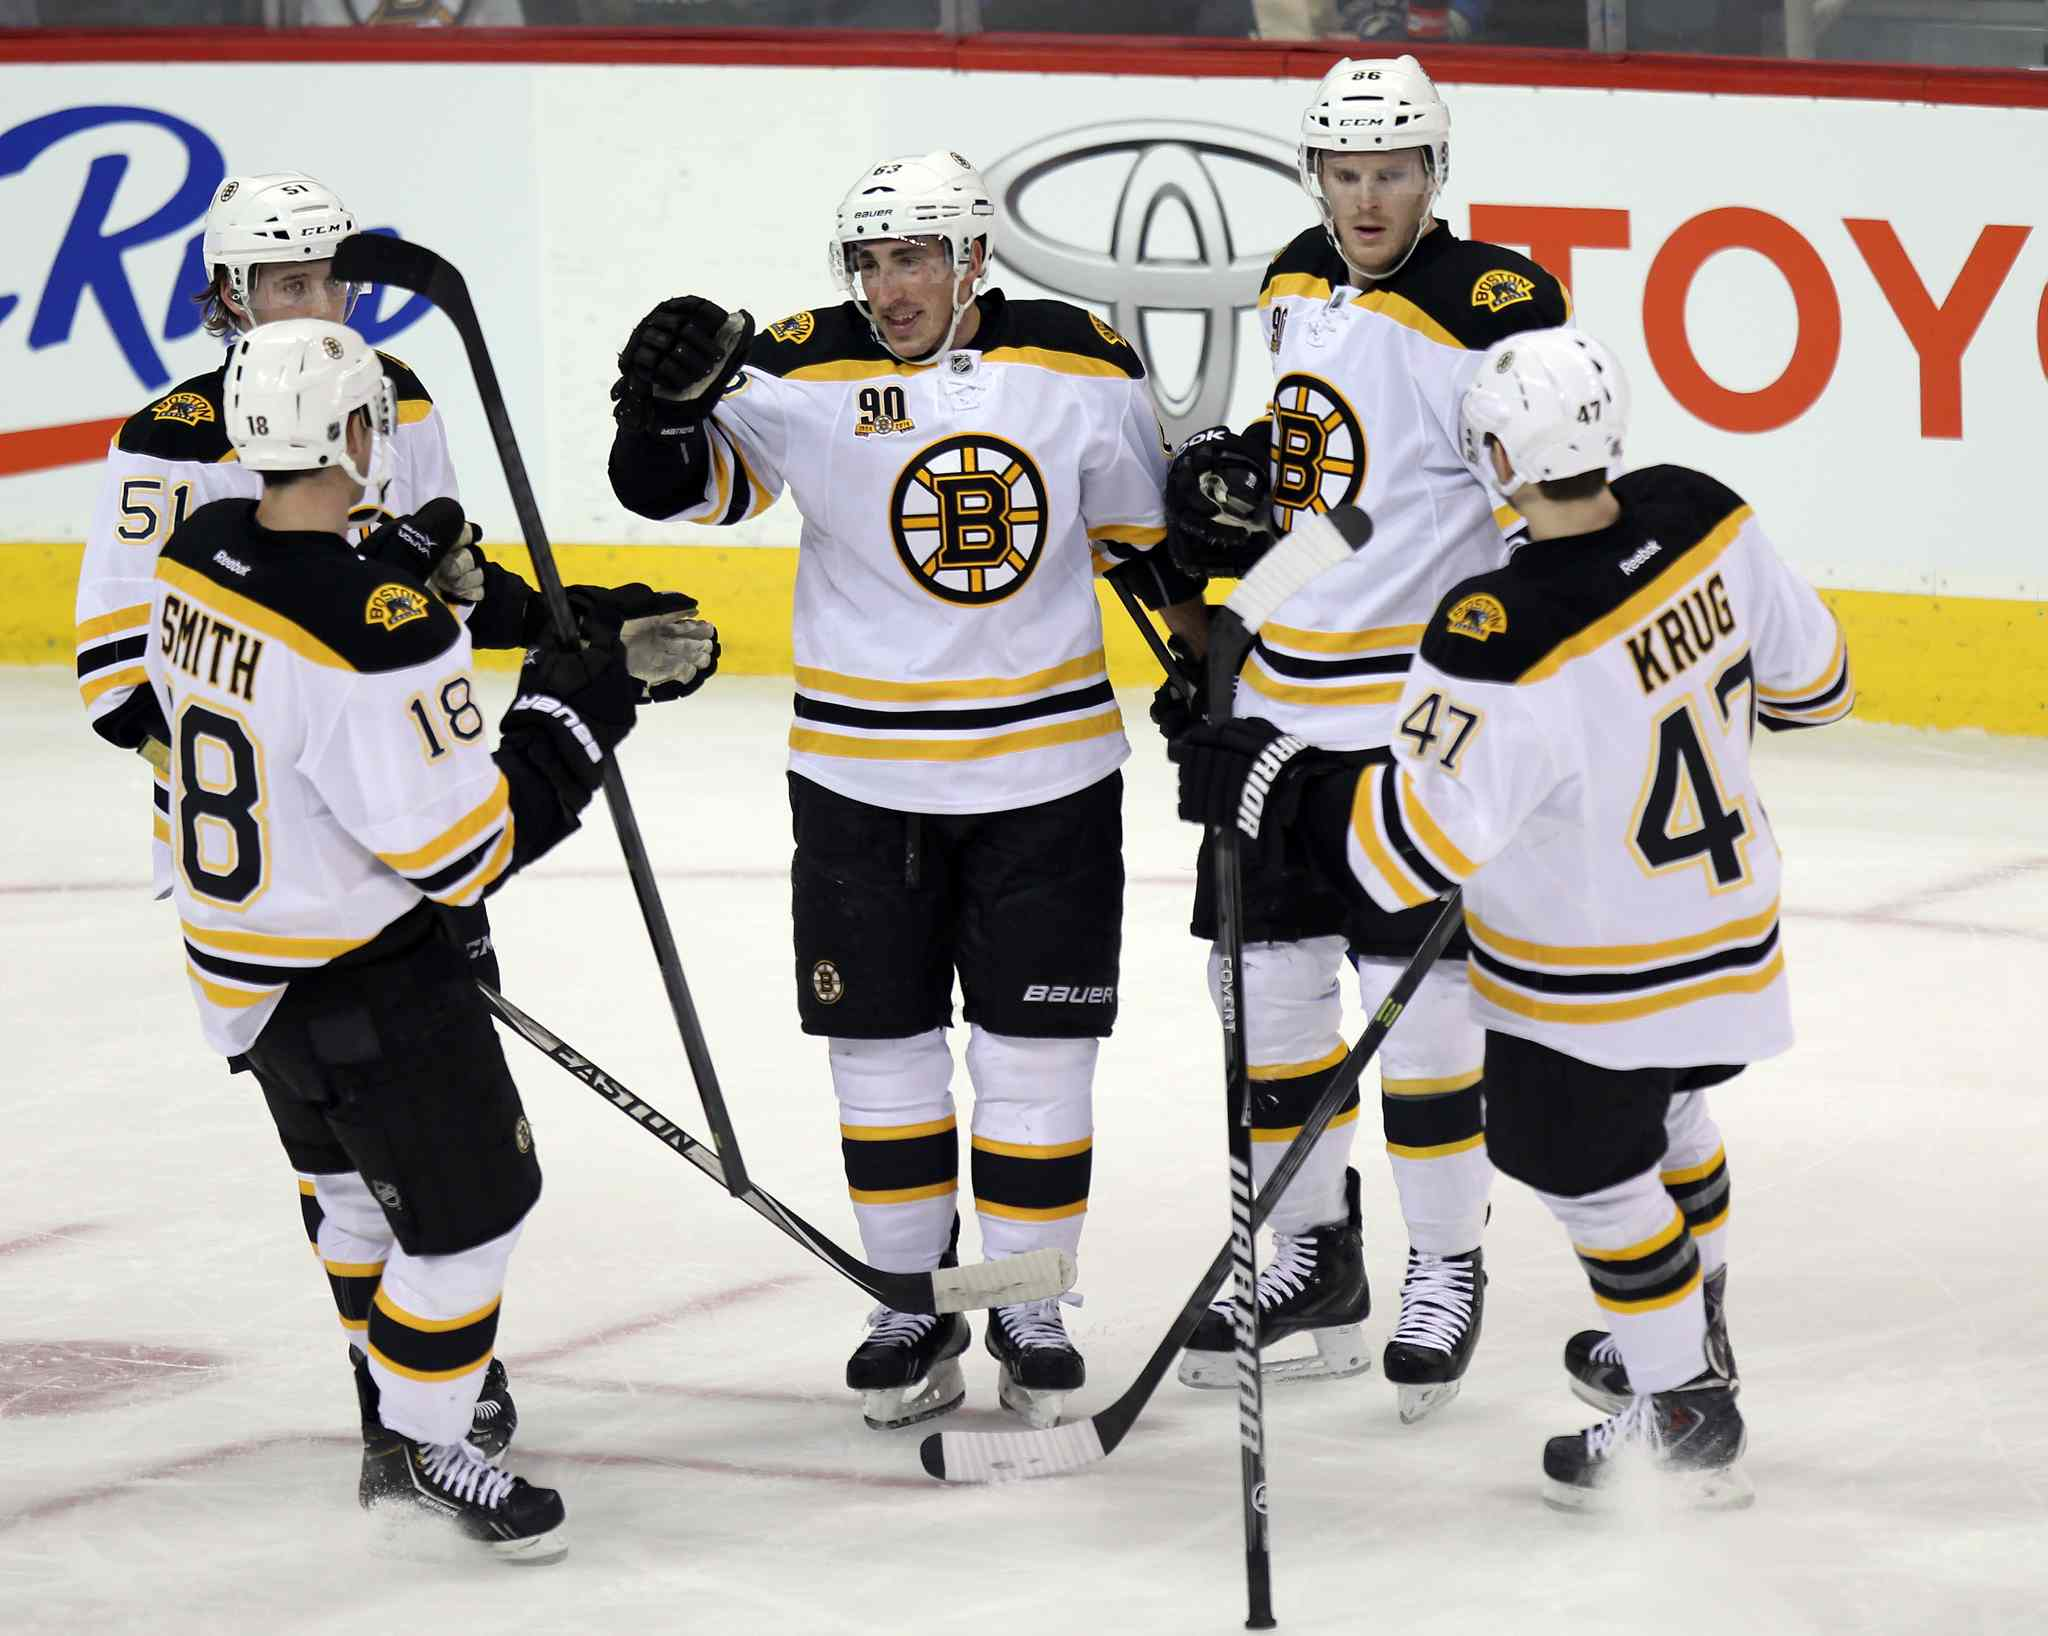 Boston Bruin linemates congratulate #63 Brad Marchand (centre) for scoring the Bruins' opener in the first period of Thursday's game.